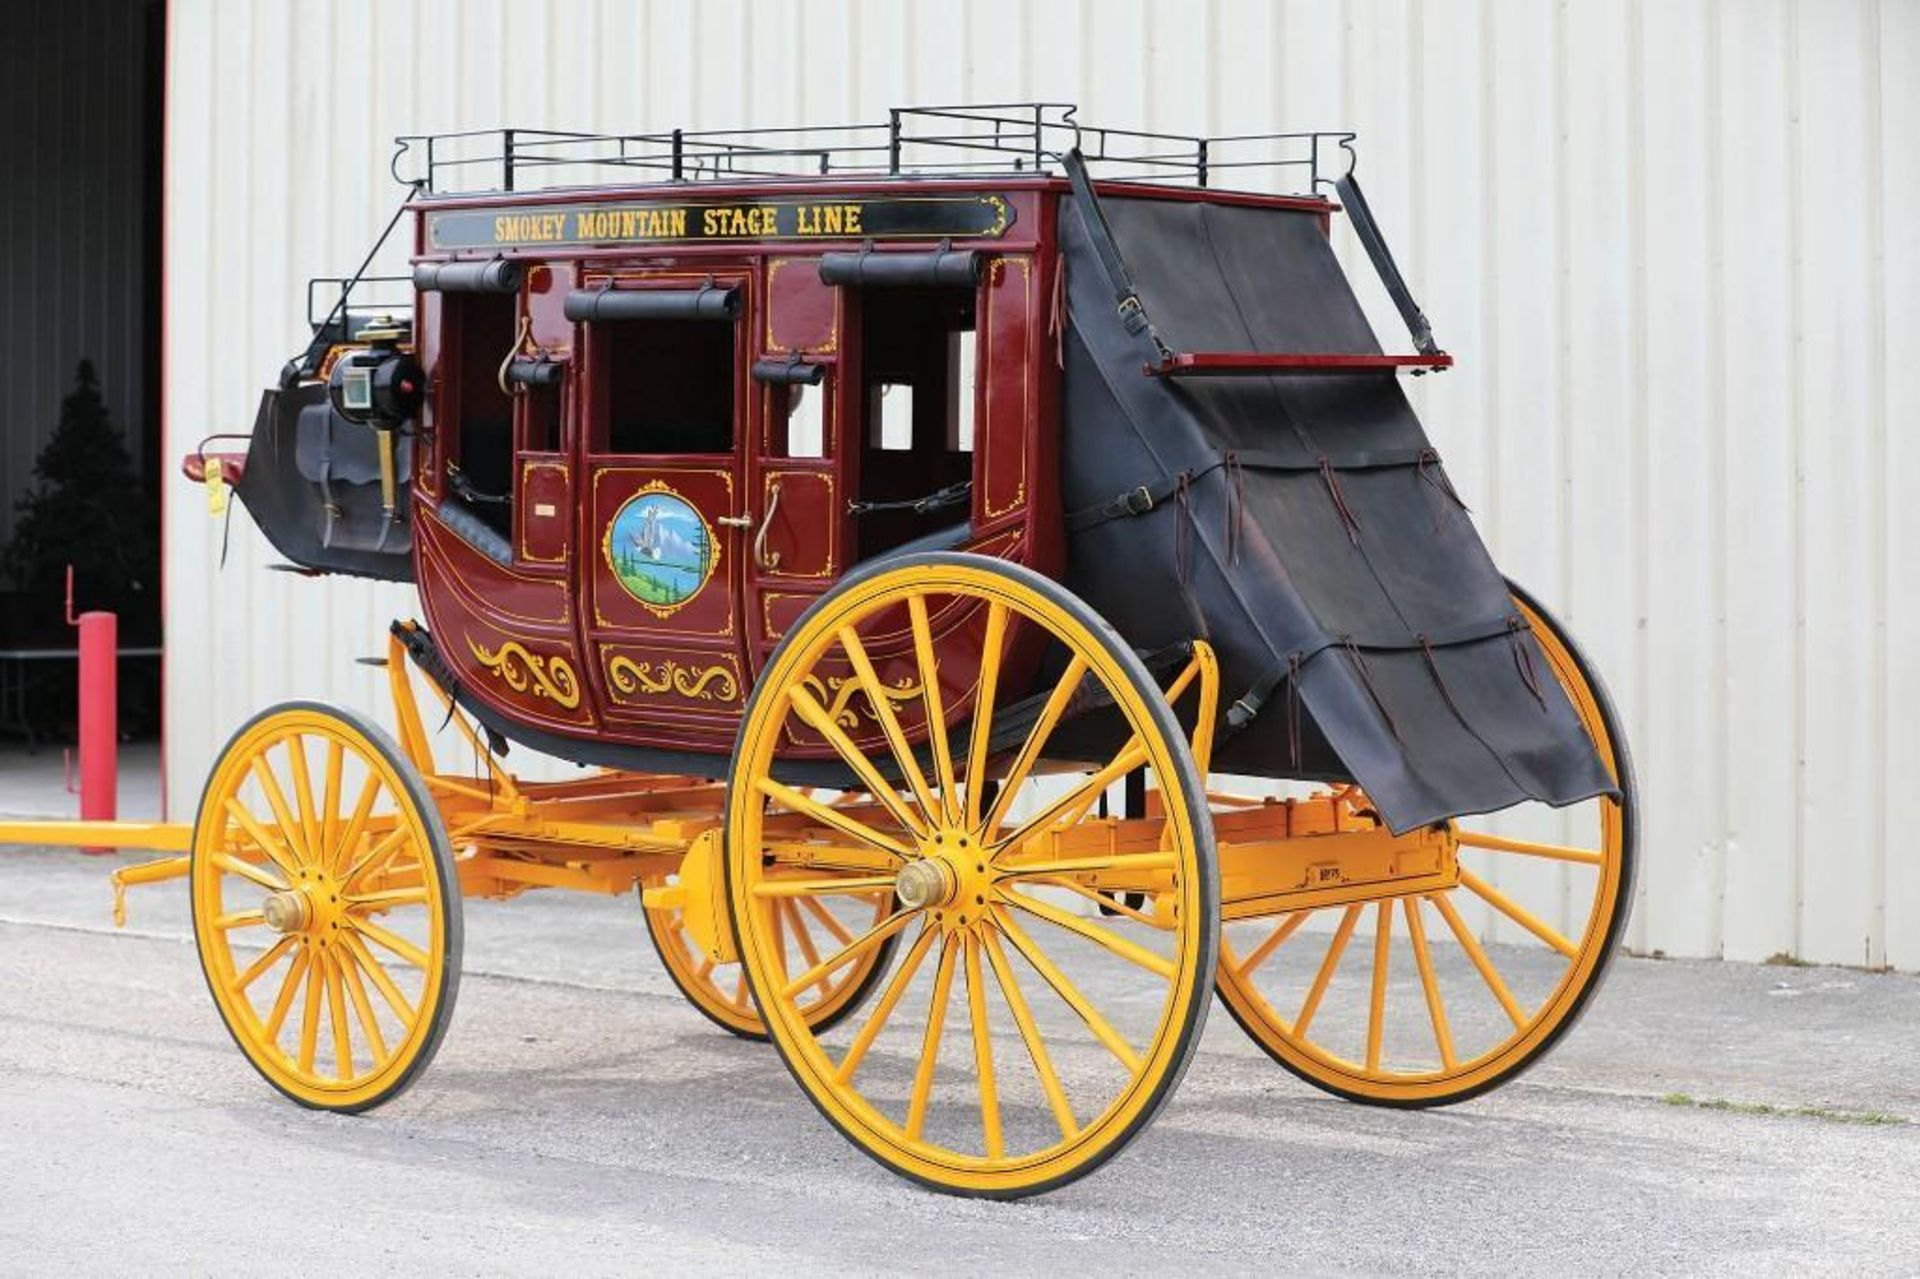 LATHAM Stagecoach, Built in Fortuna, Missouri in 2001, Mint Condition, Hooked Twice for Parades - Image 3 of 4